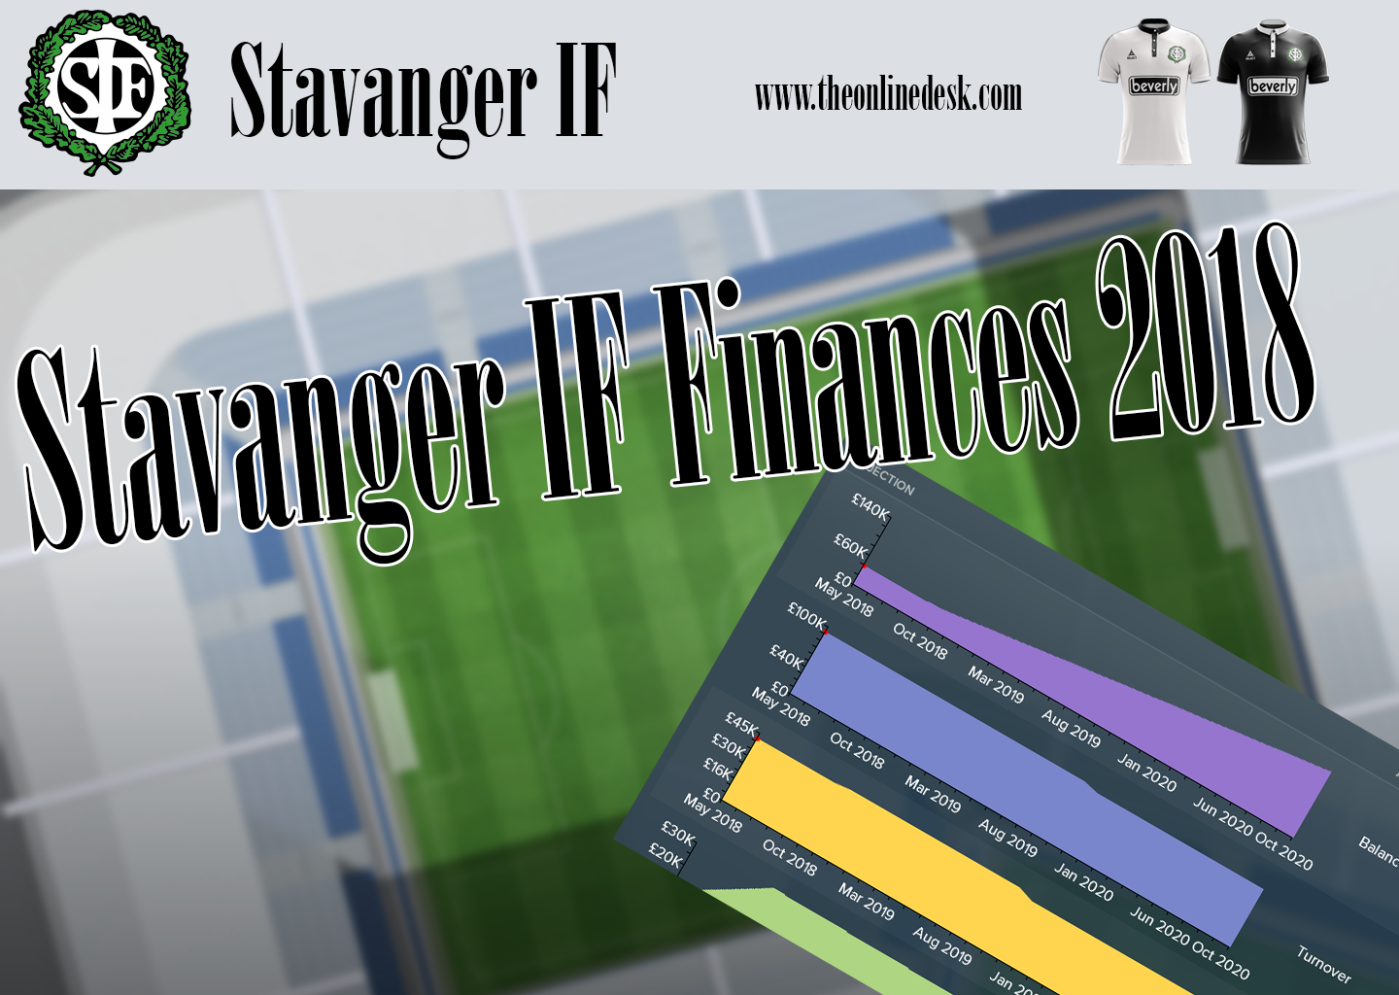 Finances Stavanger IF, SIF